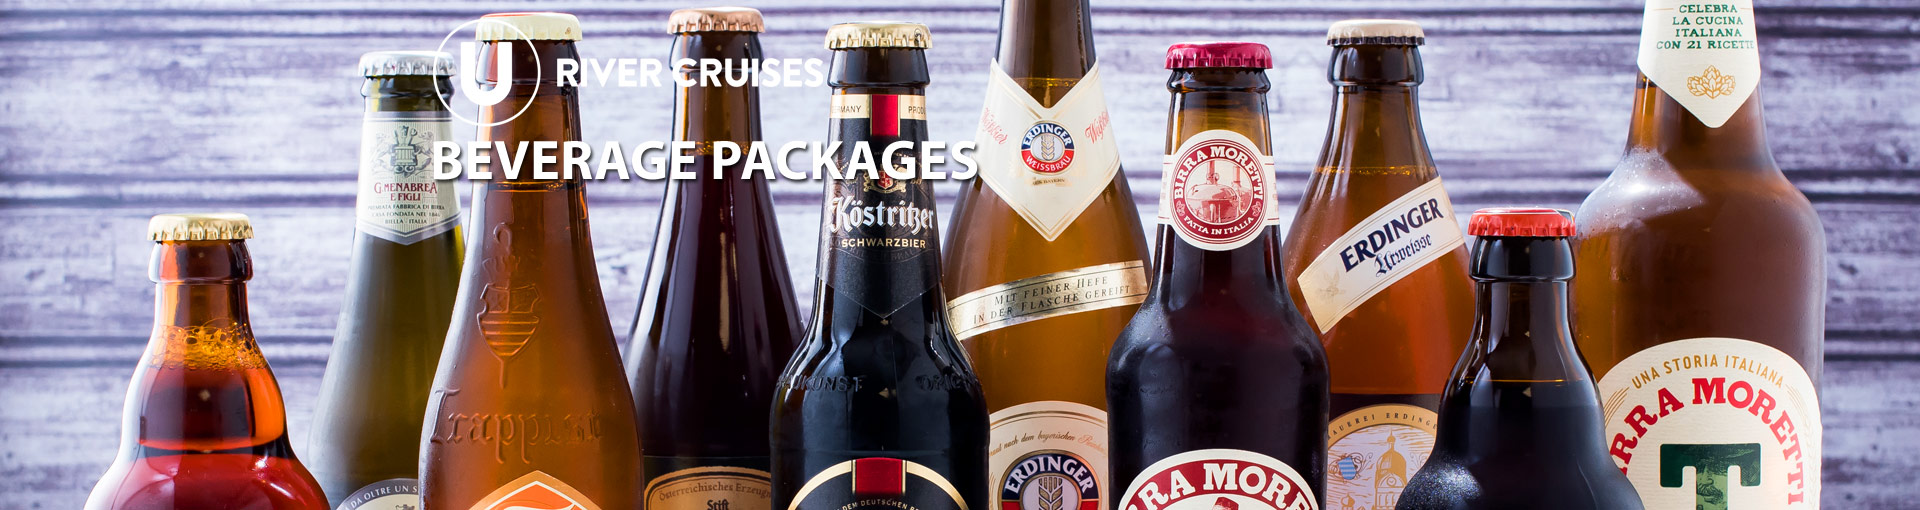 U River Cruises Drink Packages